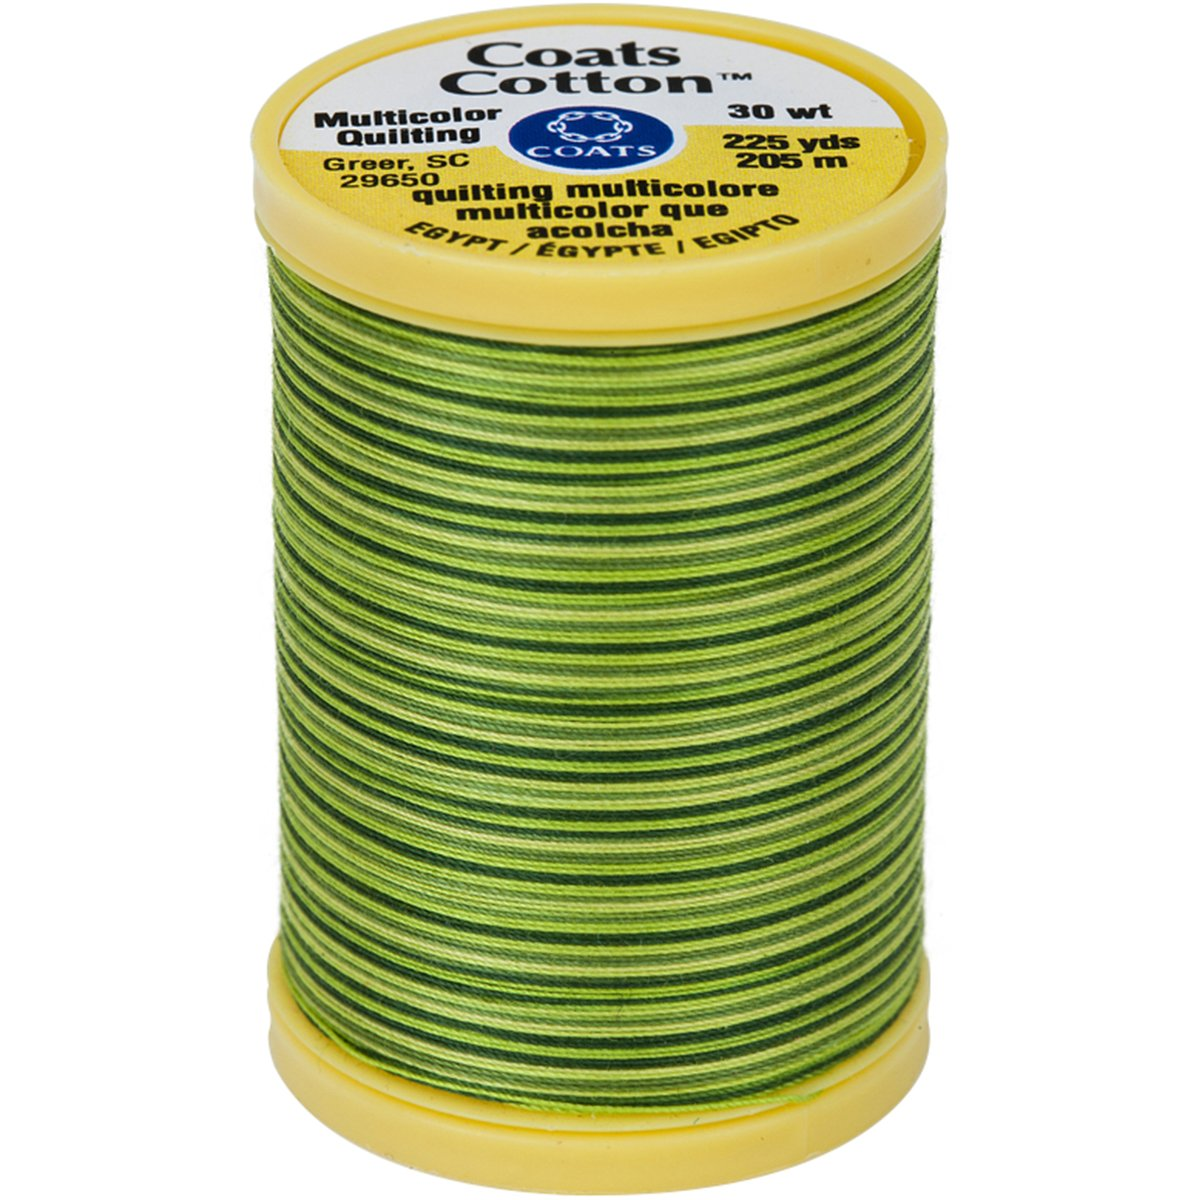 Multicolor 225 yd Coats Cotton Machine Spring Green Quilting Thread